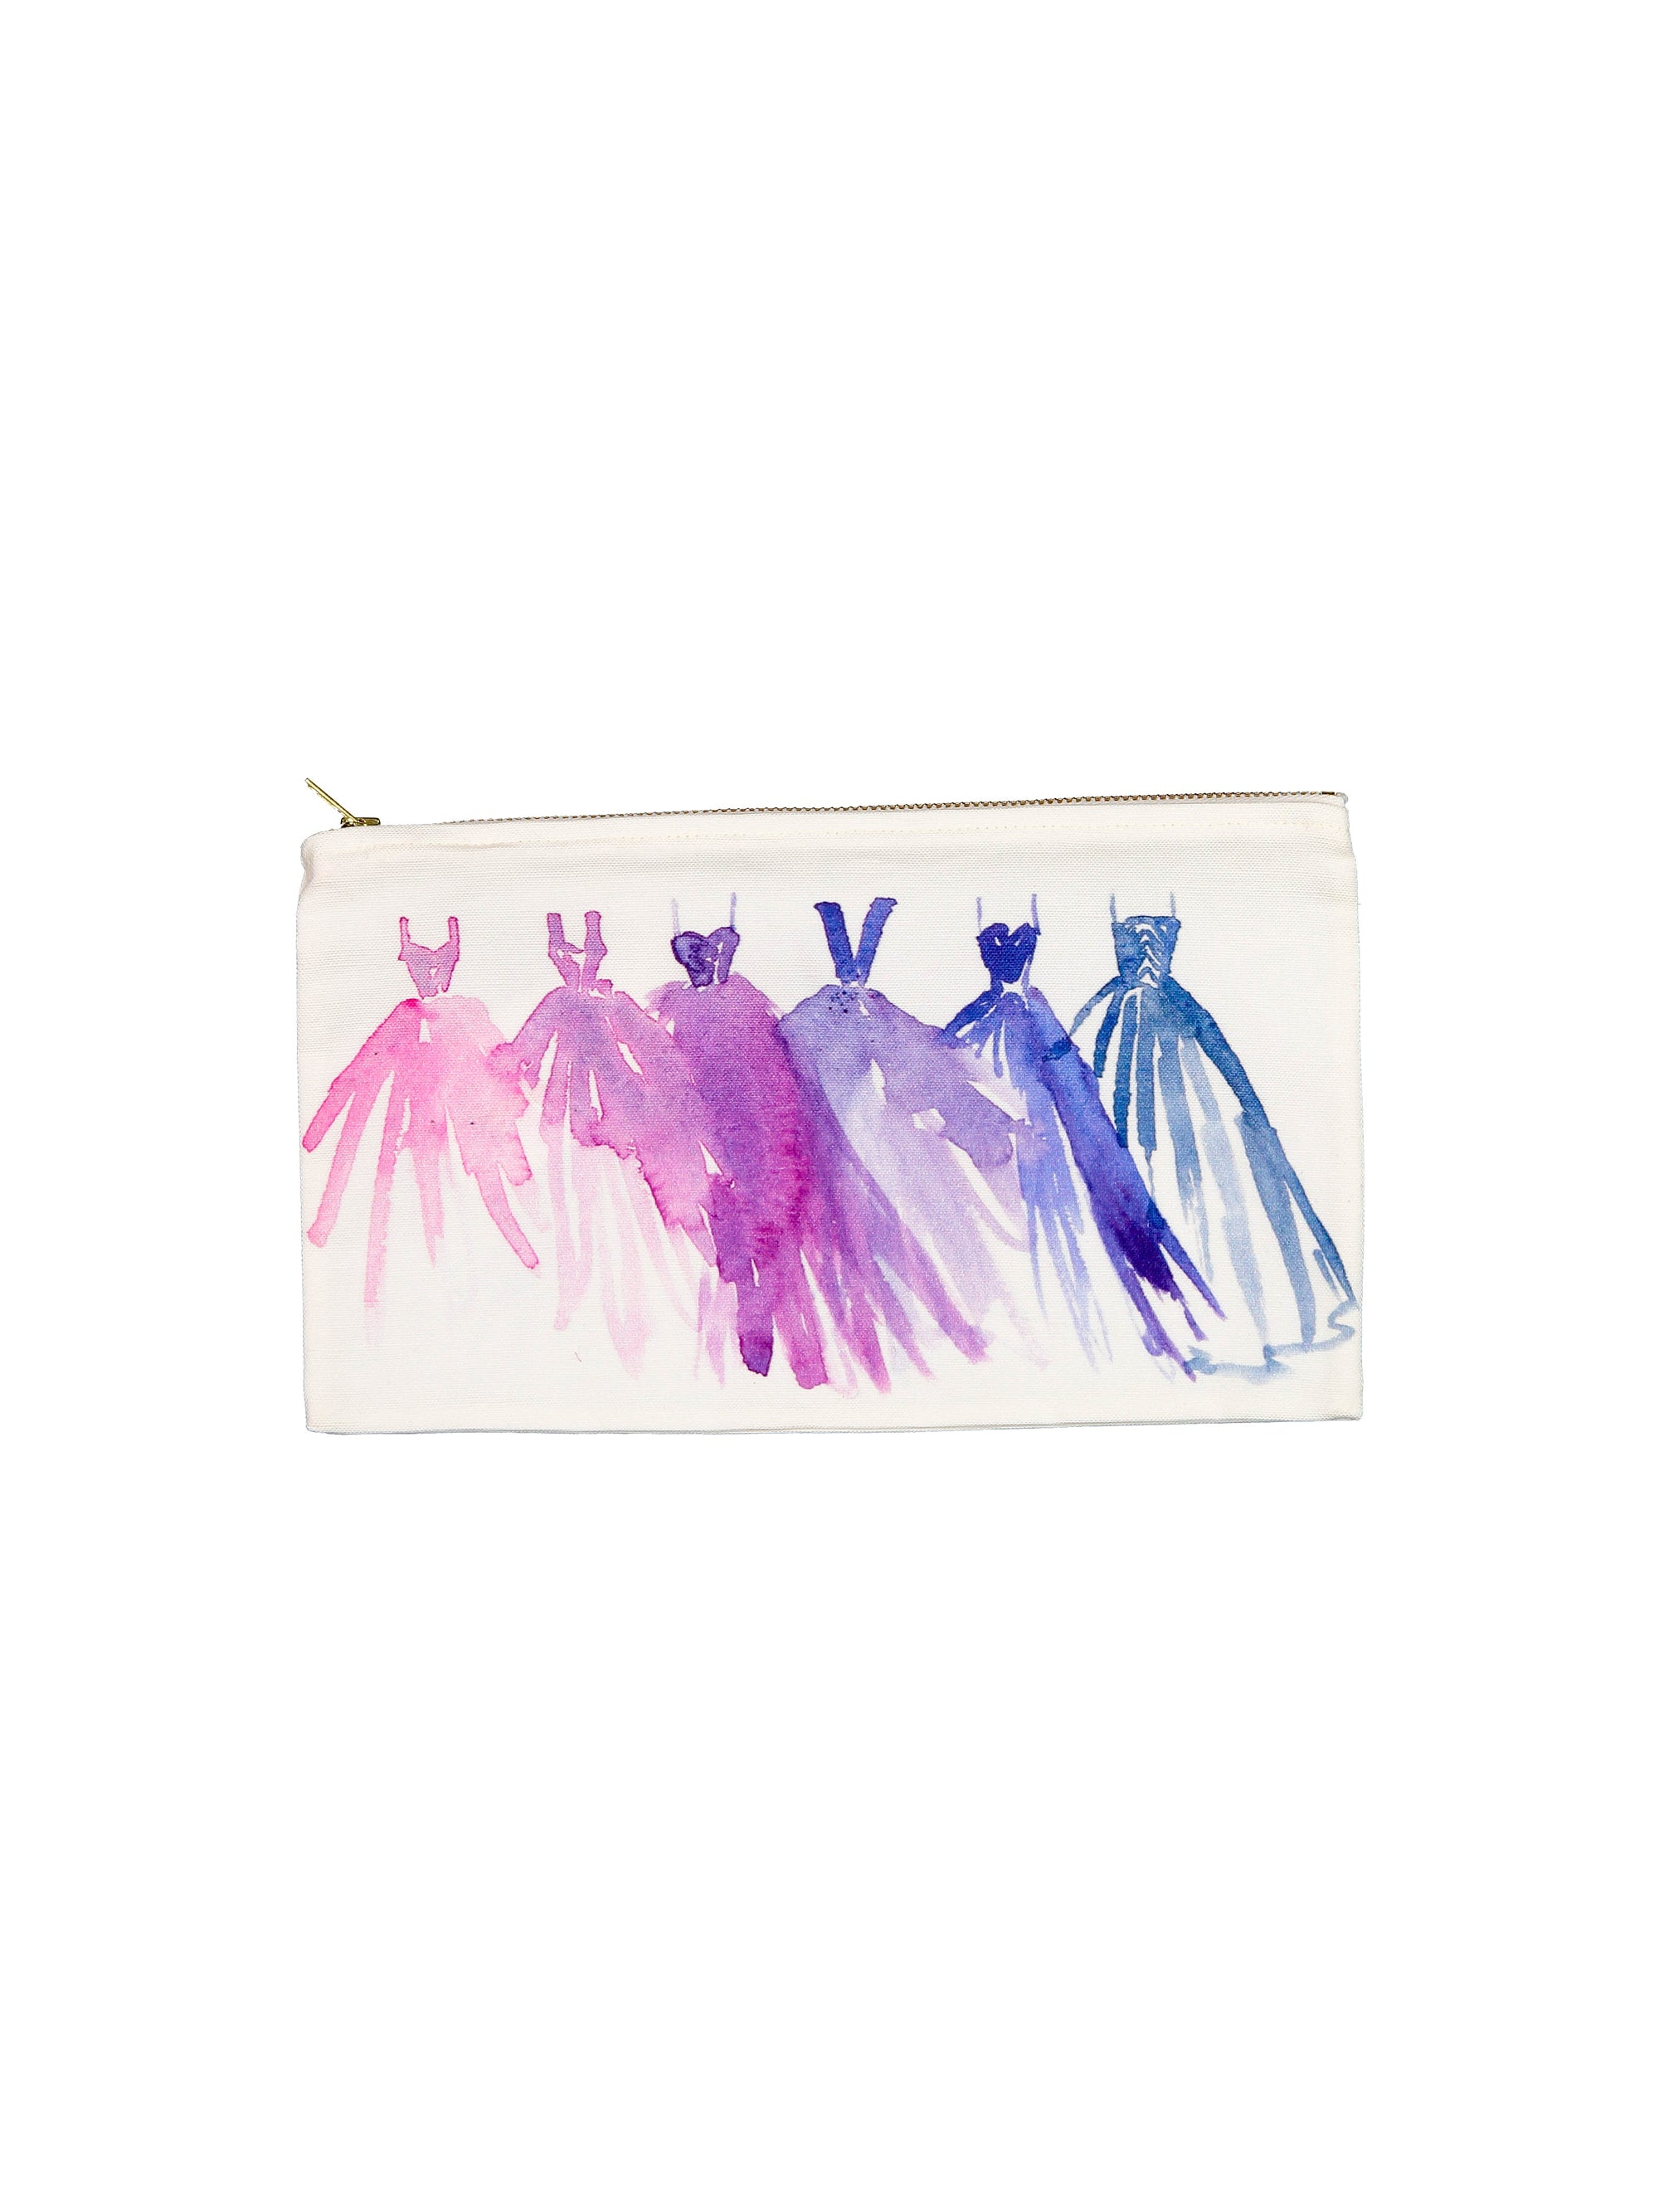 Watercolor Zip Bag